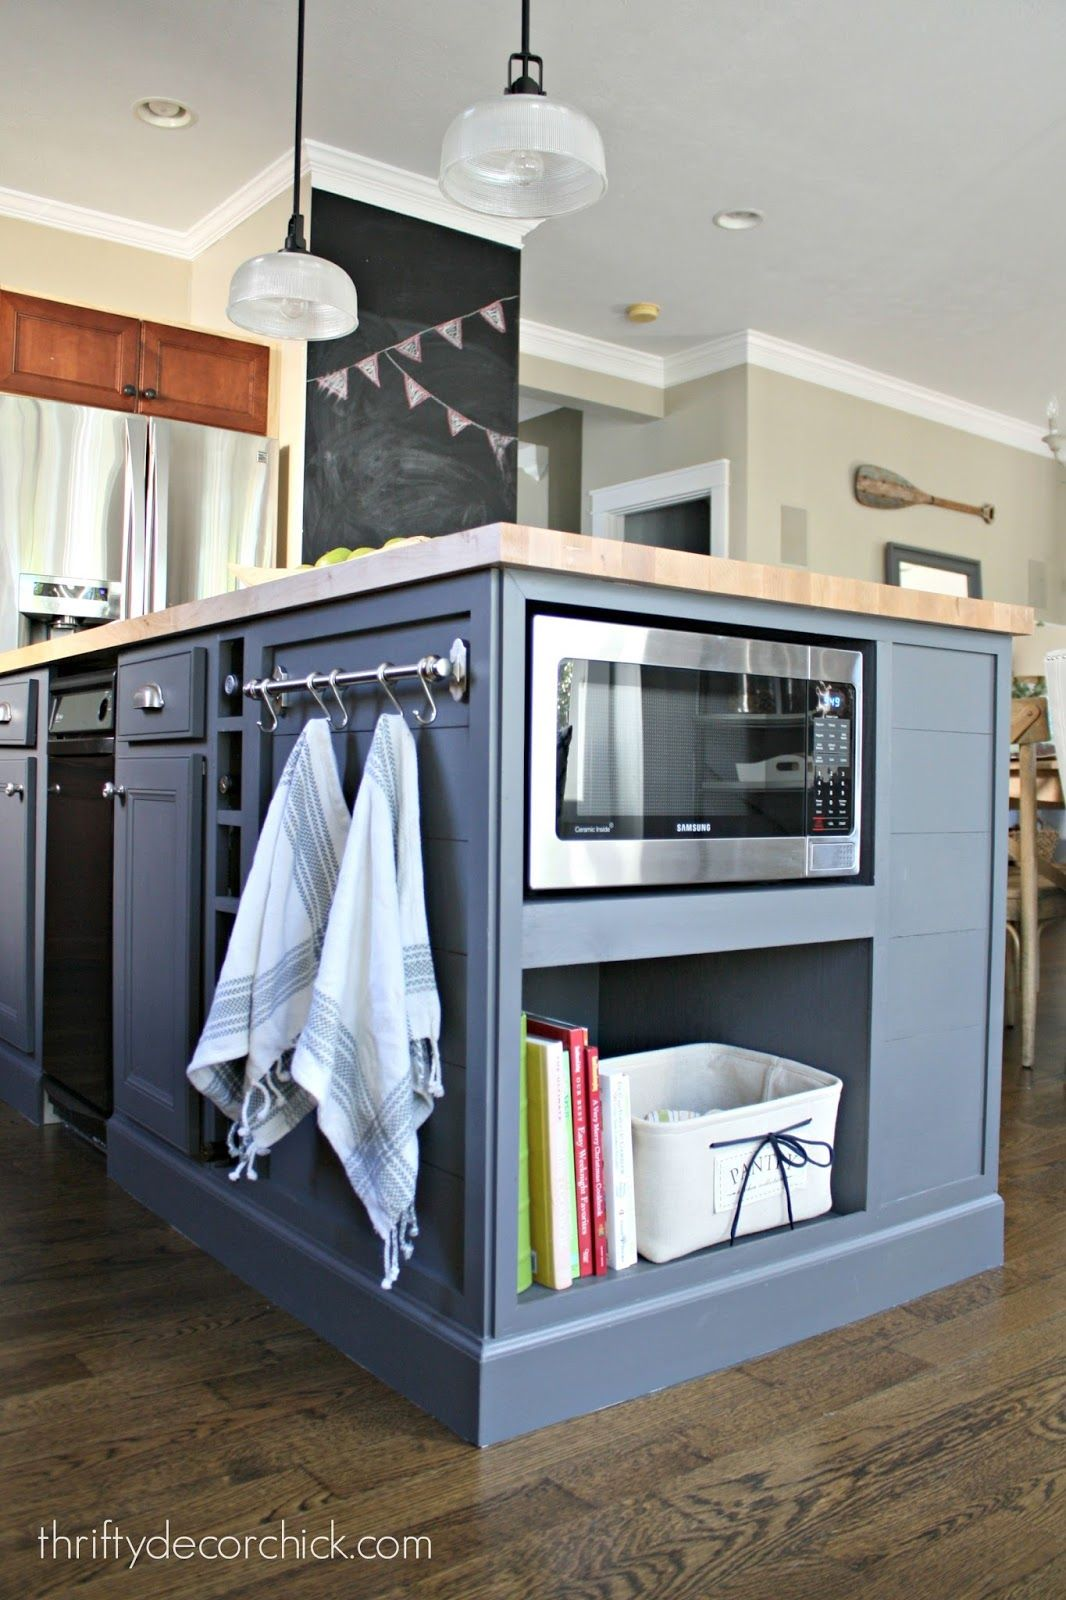 Step by instructions on how to install  microwave in your kitchen island diy also wine barrel furniture ideas you can or buy home decor rh pinterest